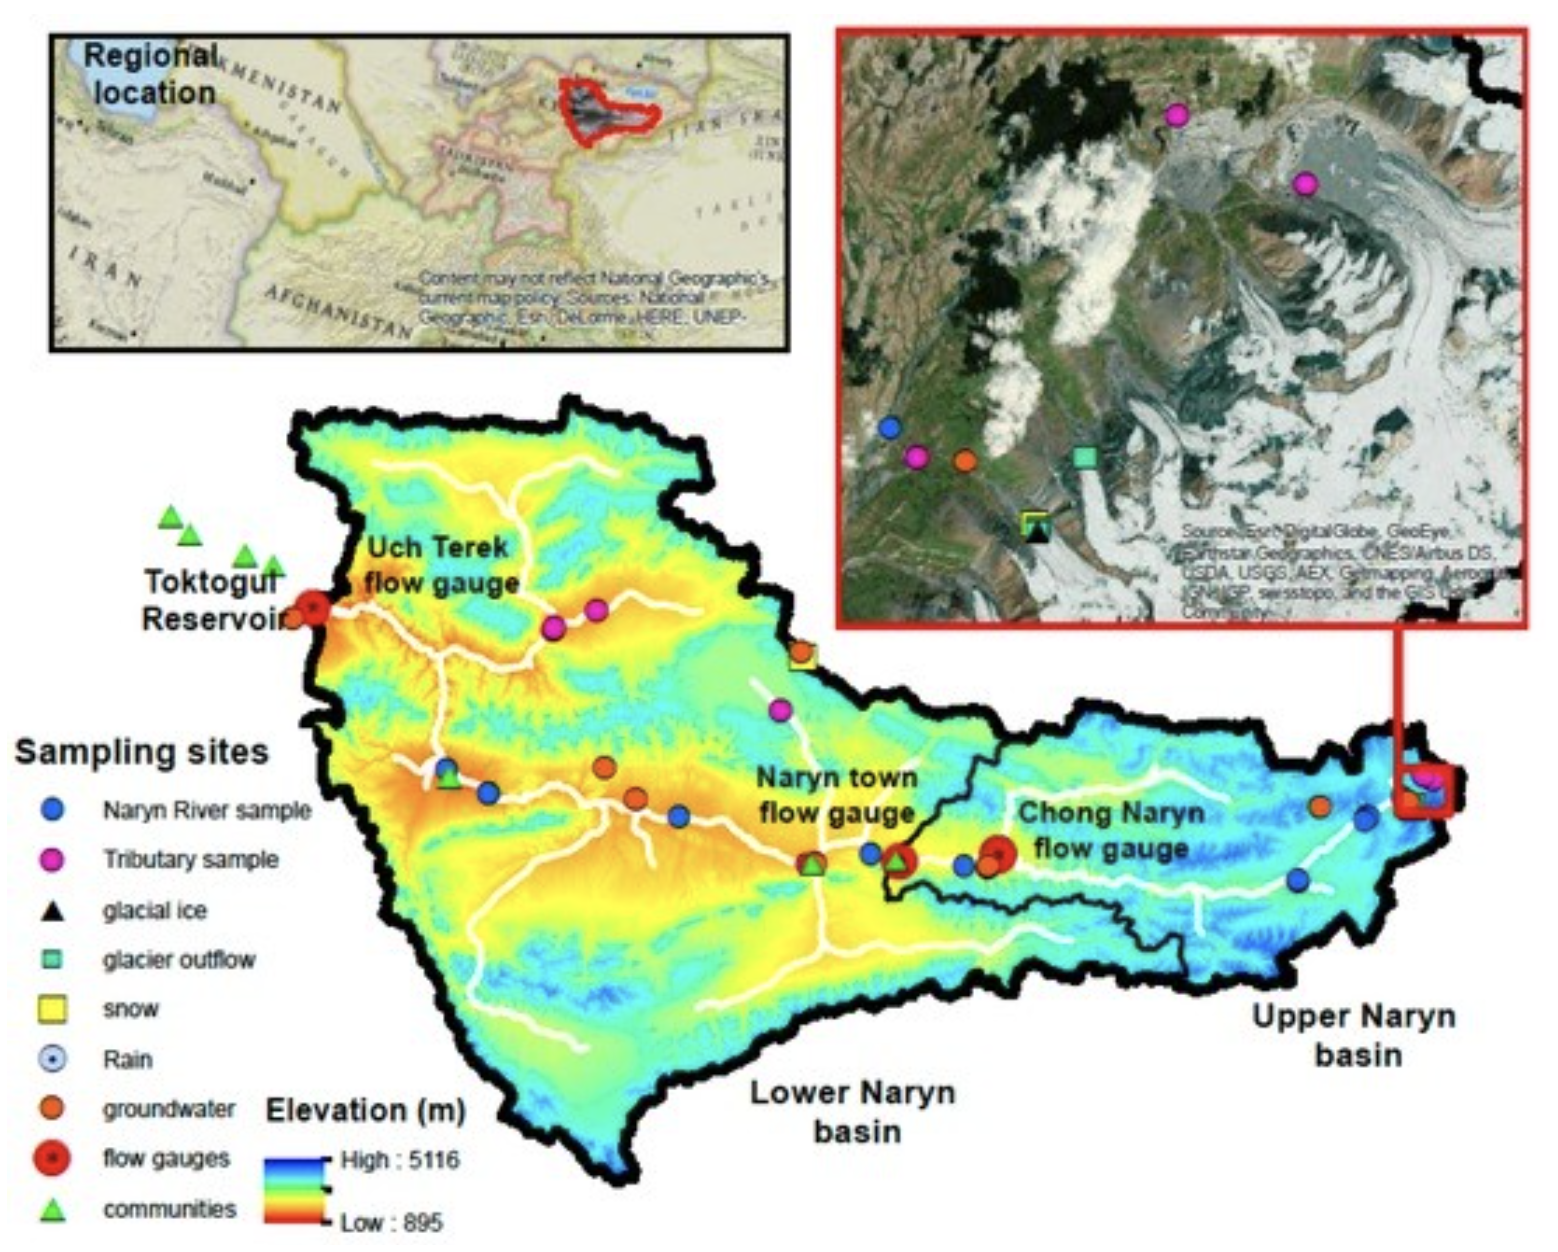 Map of the Naryn River Basin, Kyrgyzstan with a pour point at Toktogul Reservoir. Small red dots show locations of groundwater samples, small blue dots show locations of Naryn River water samples, pink dots show locations of tributary samples. The inset satellite imagery shows the glaciated massif that is the location of glacier ice samples (black triangle) and glacier outflow (green squares).